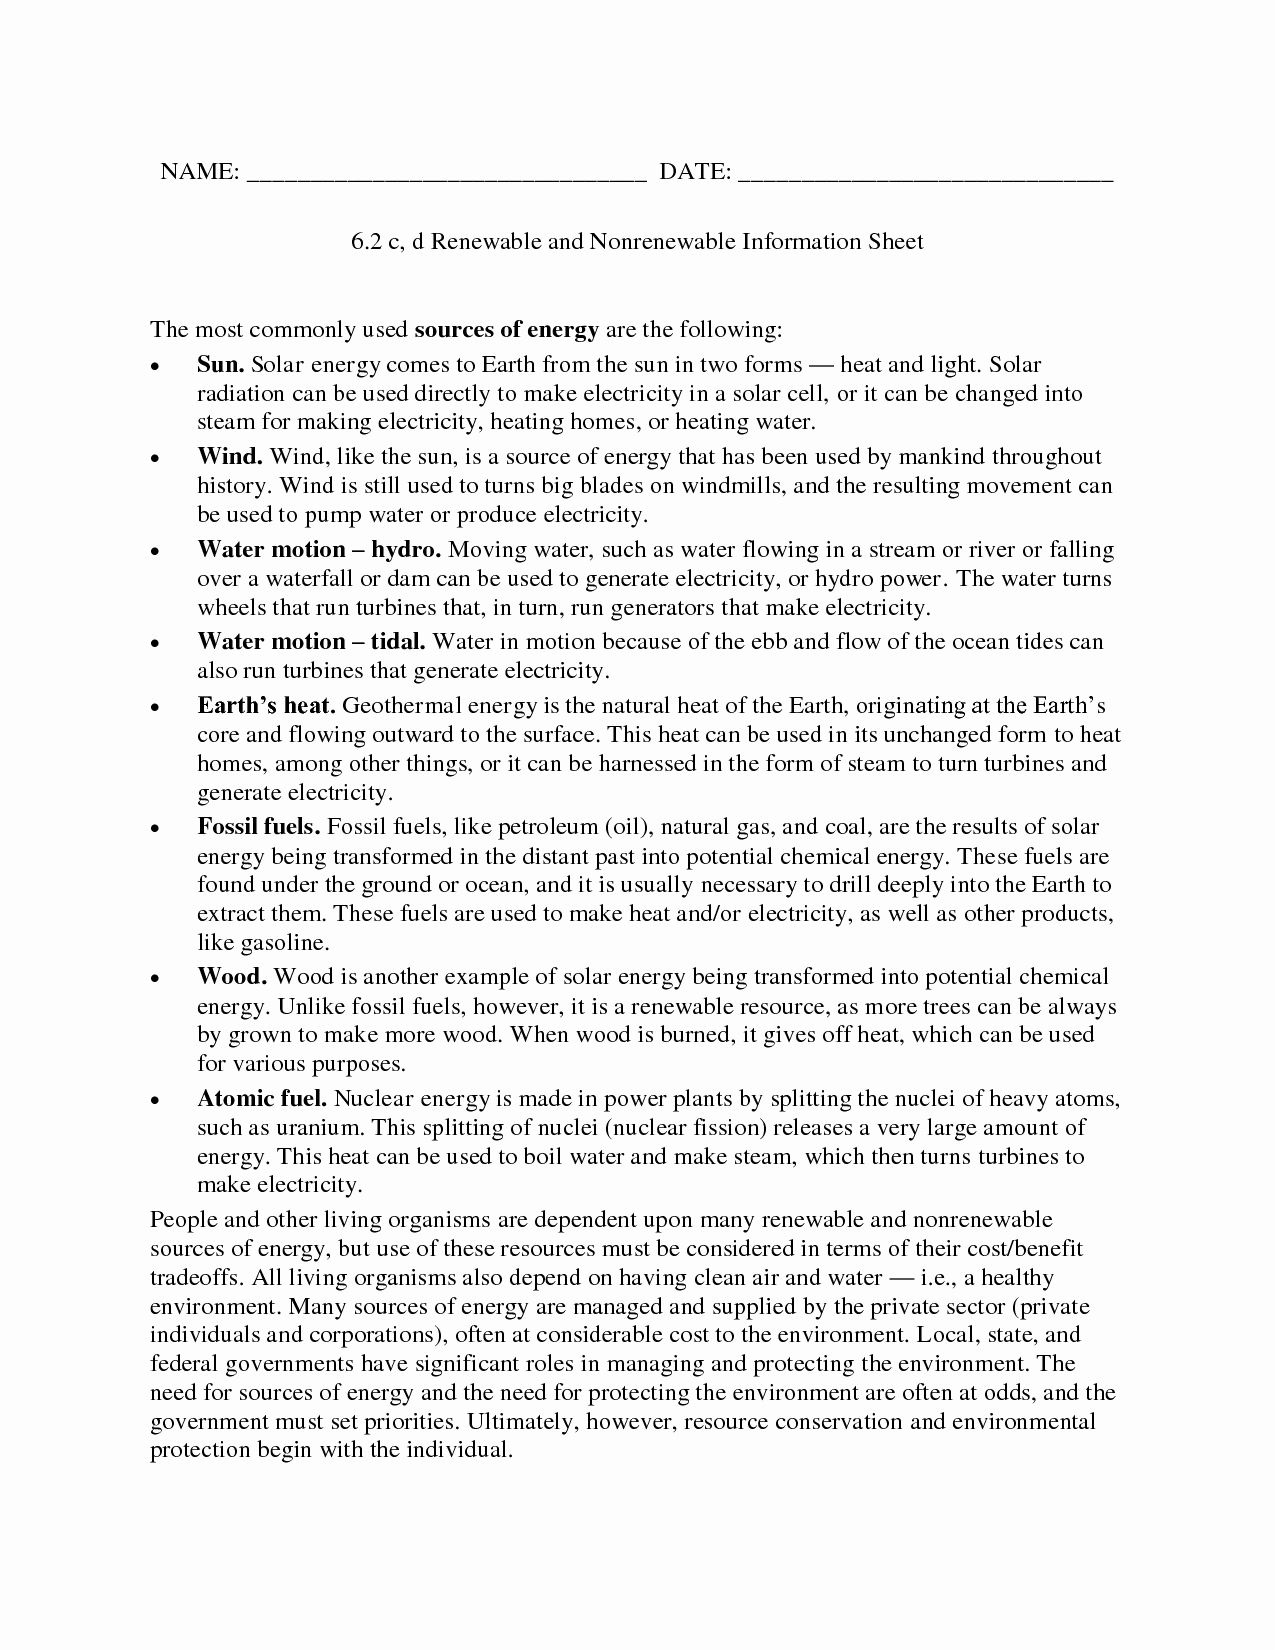 Renewable and Nonrenewable Resources Worksheet Best Of Renewables Renewable and Nonrenewable Worksheet Answers